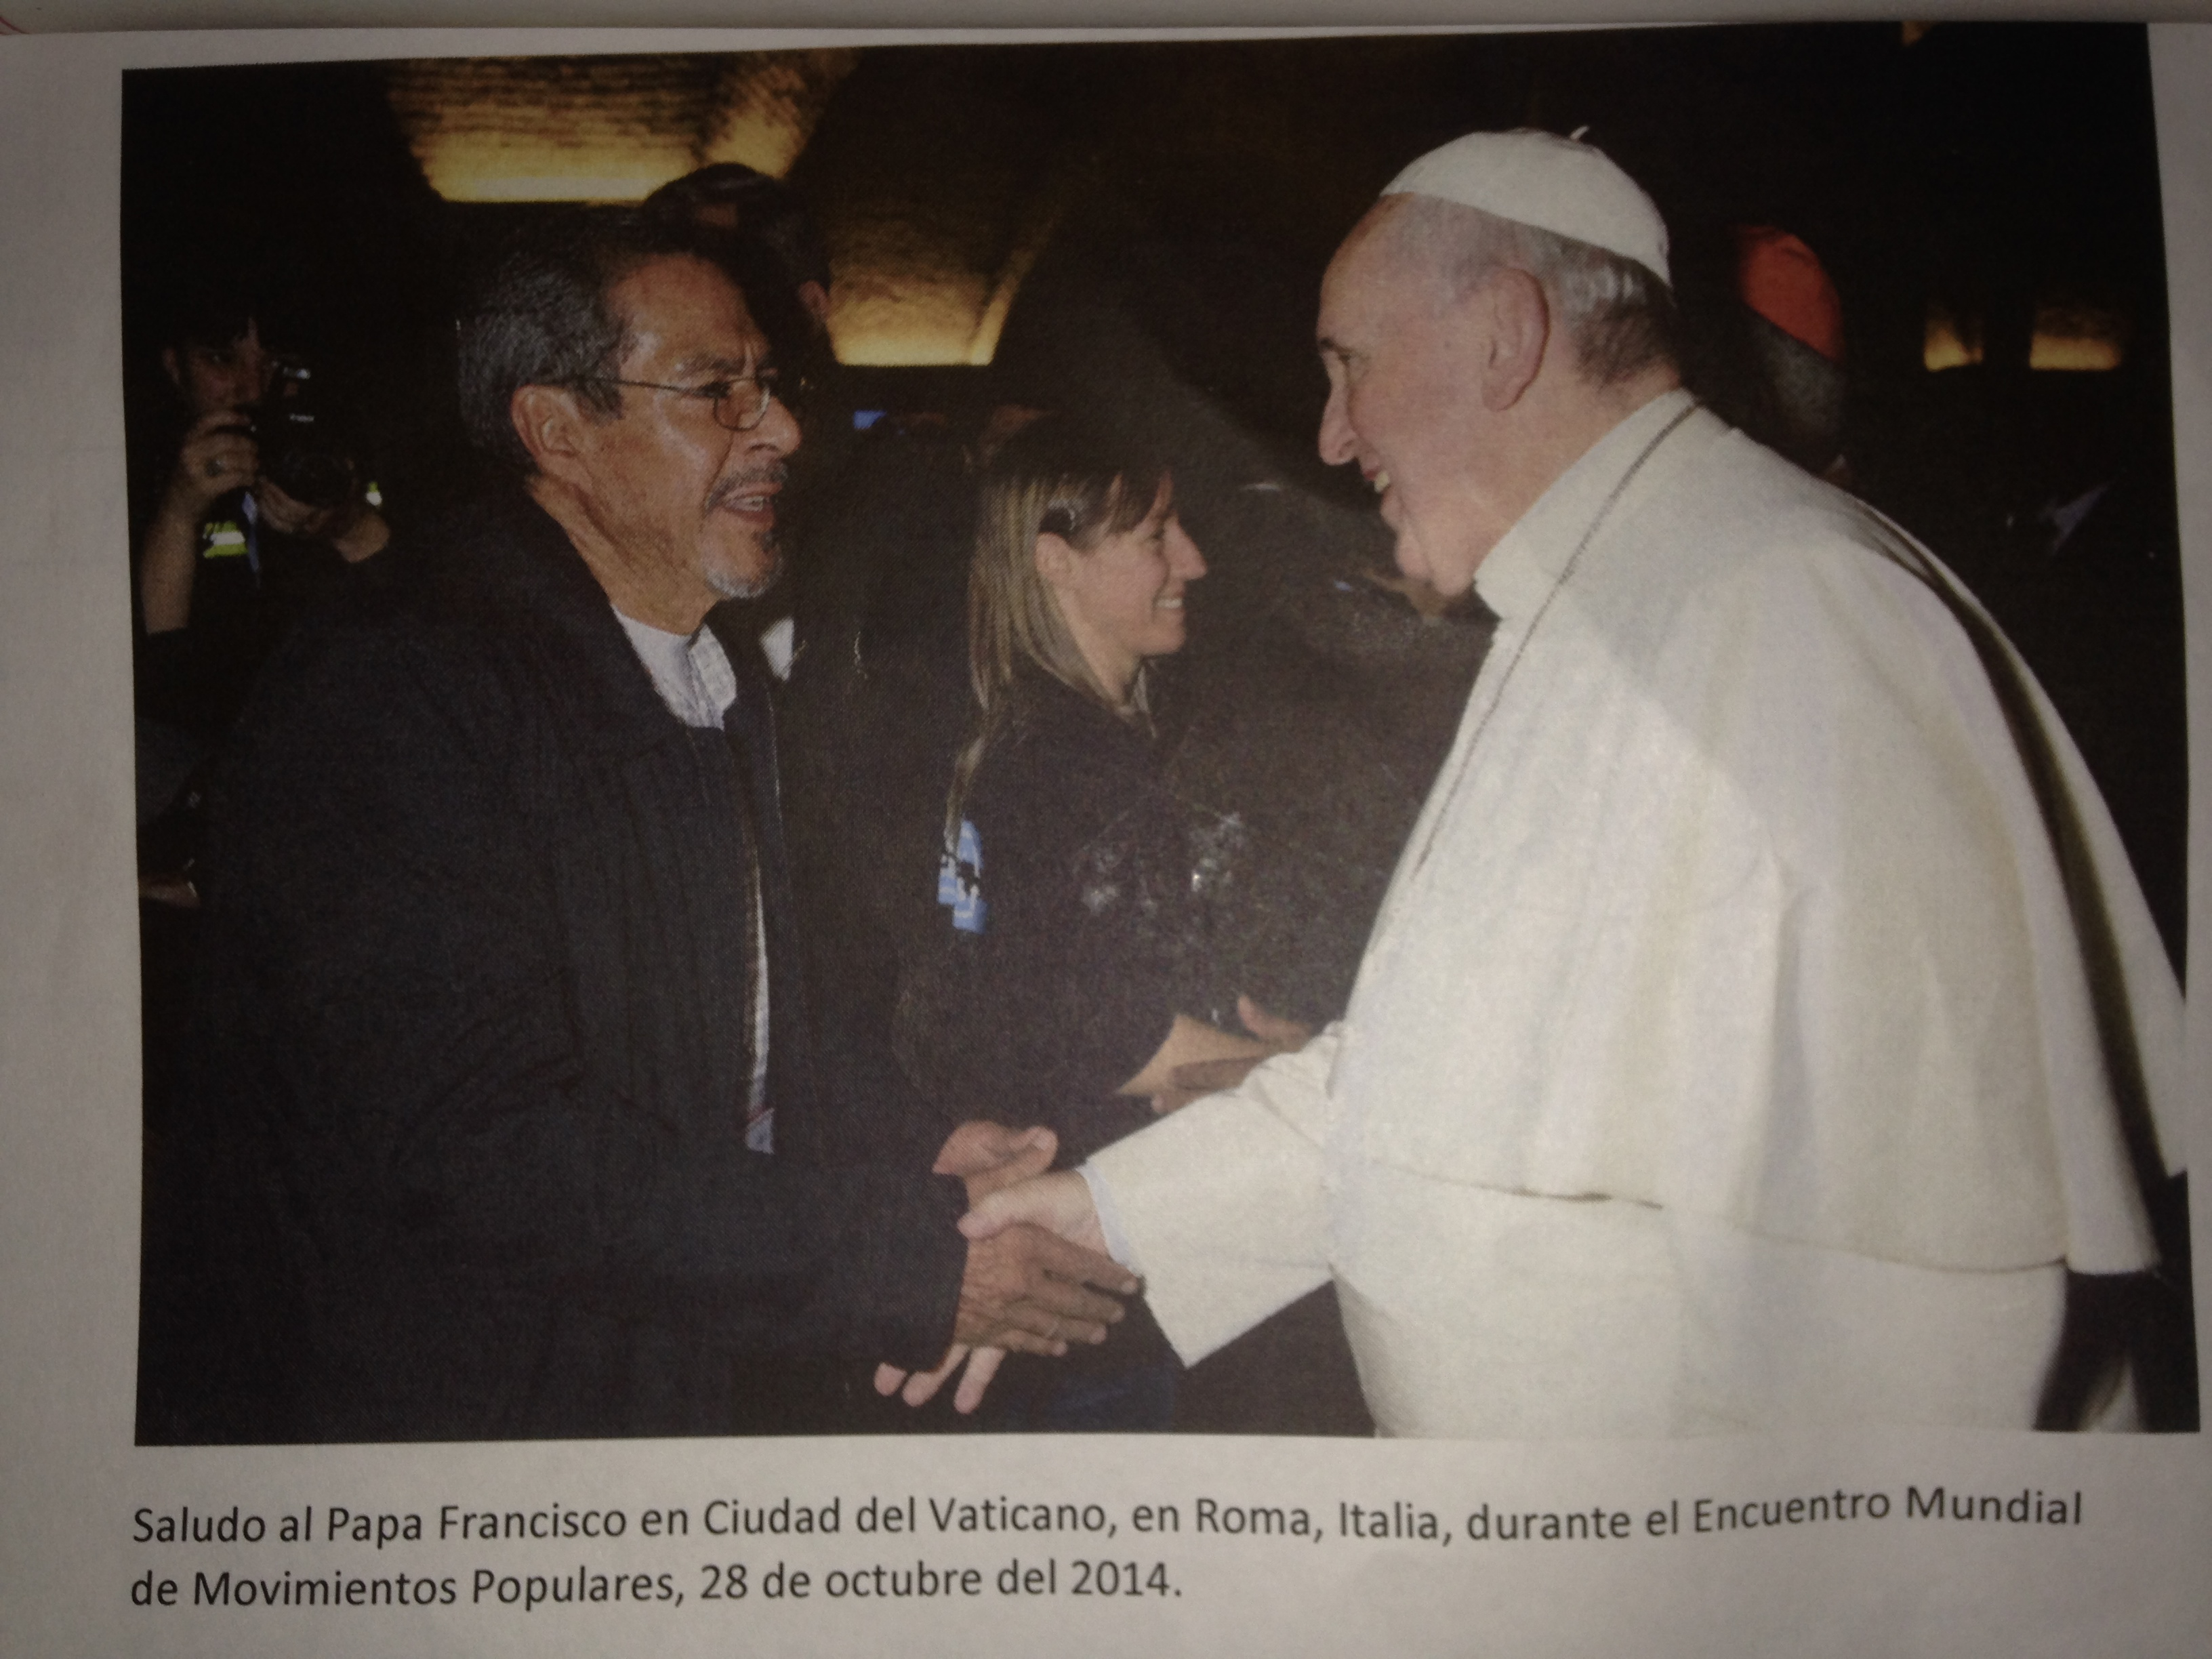 This is a photo of Carlos Marentes meeting the Pope on October 28, 2014. Photo credit: Jeraldine Ramos